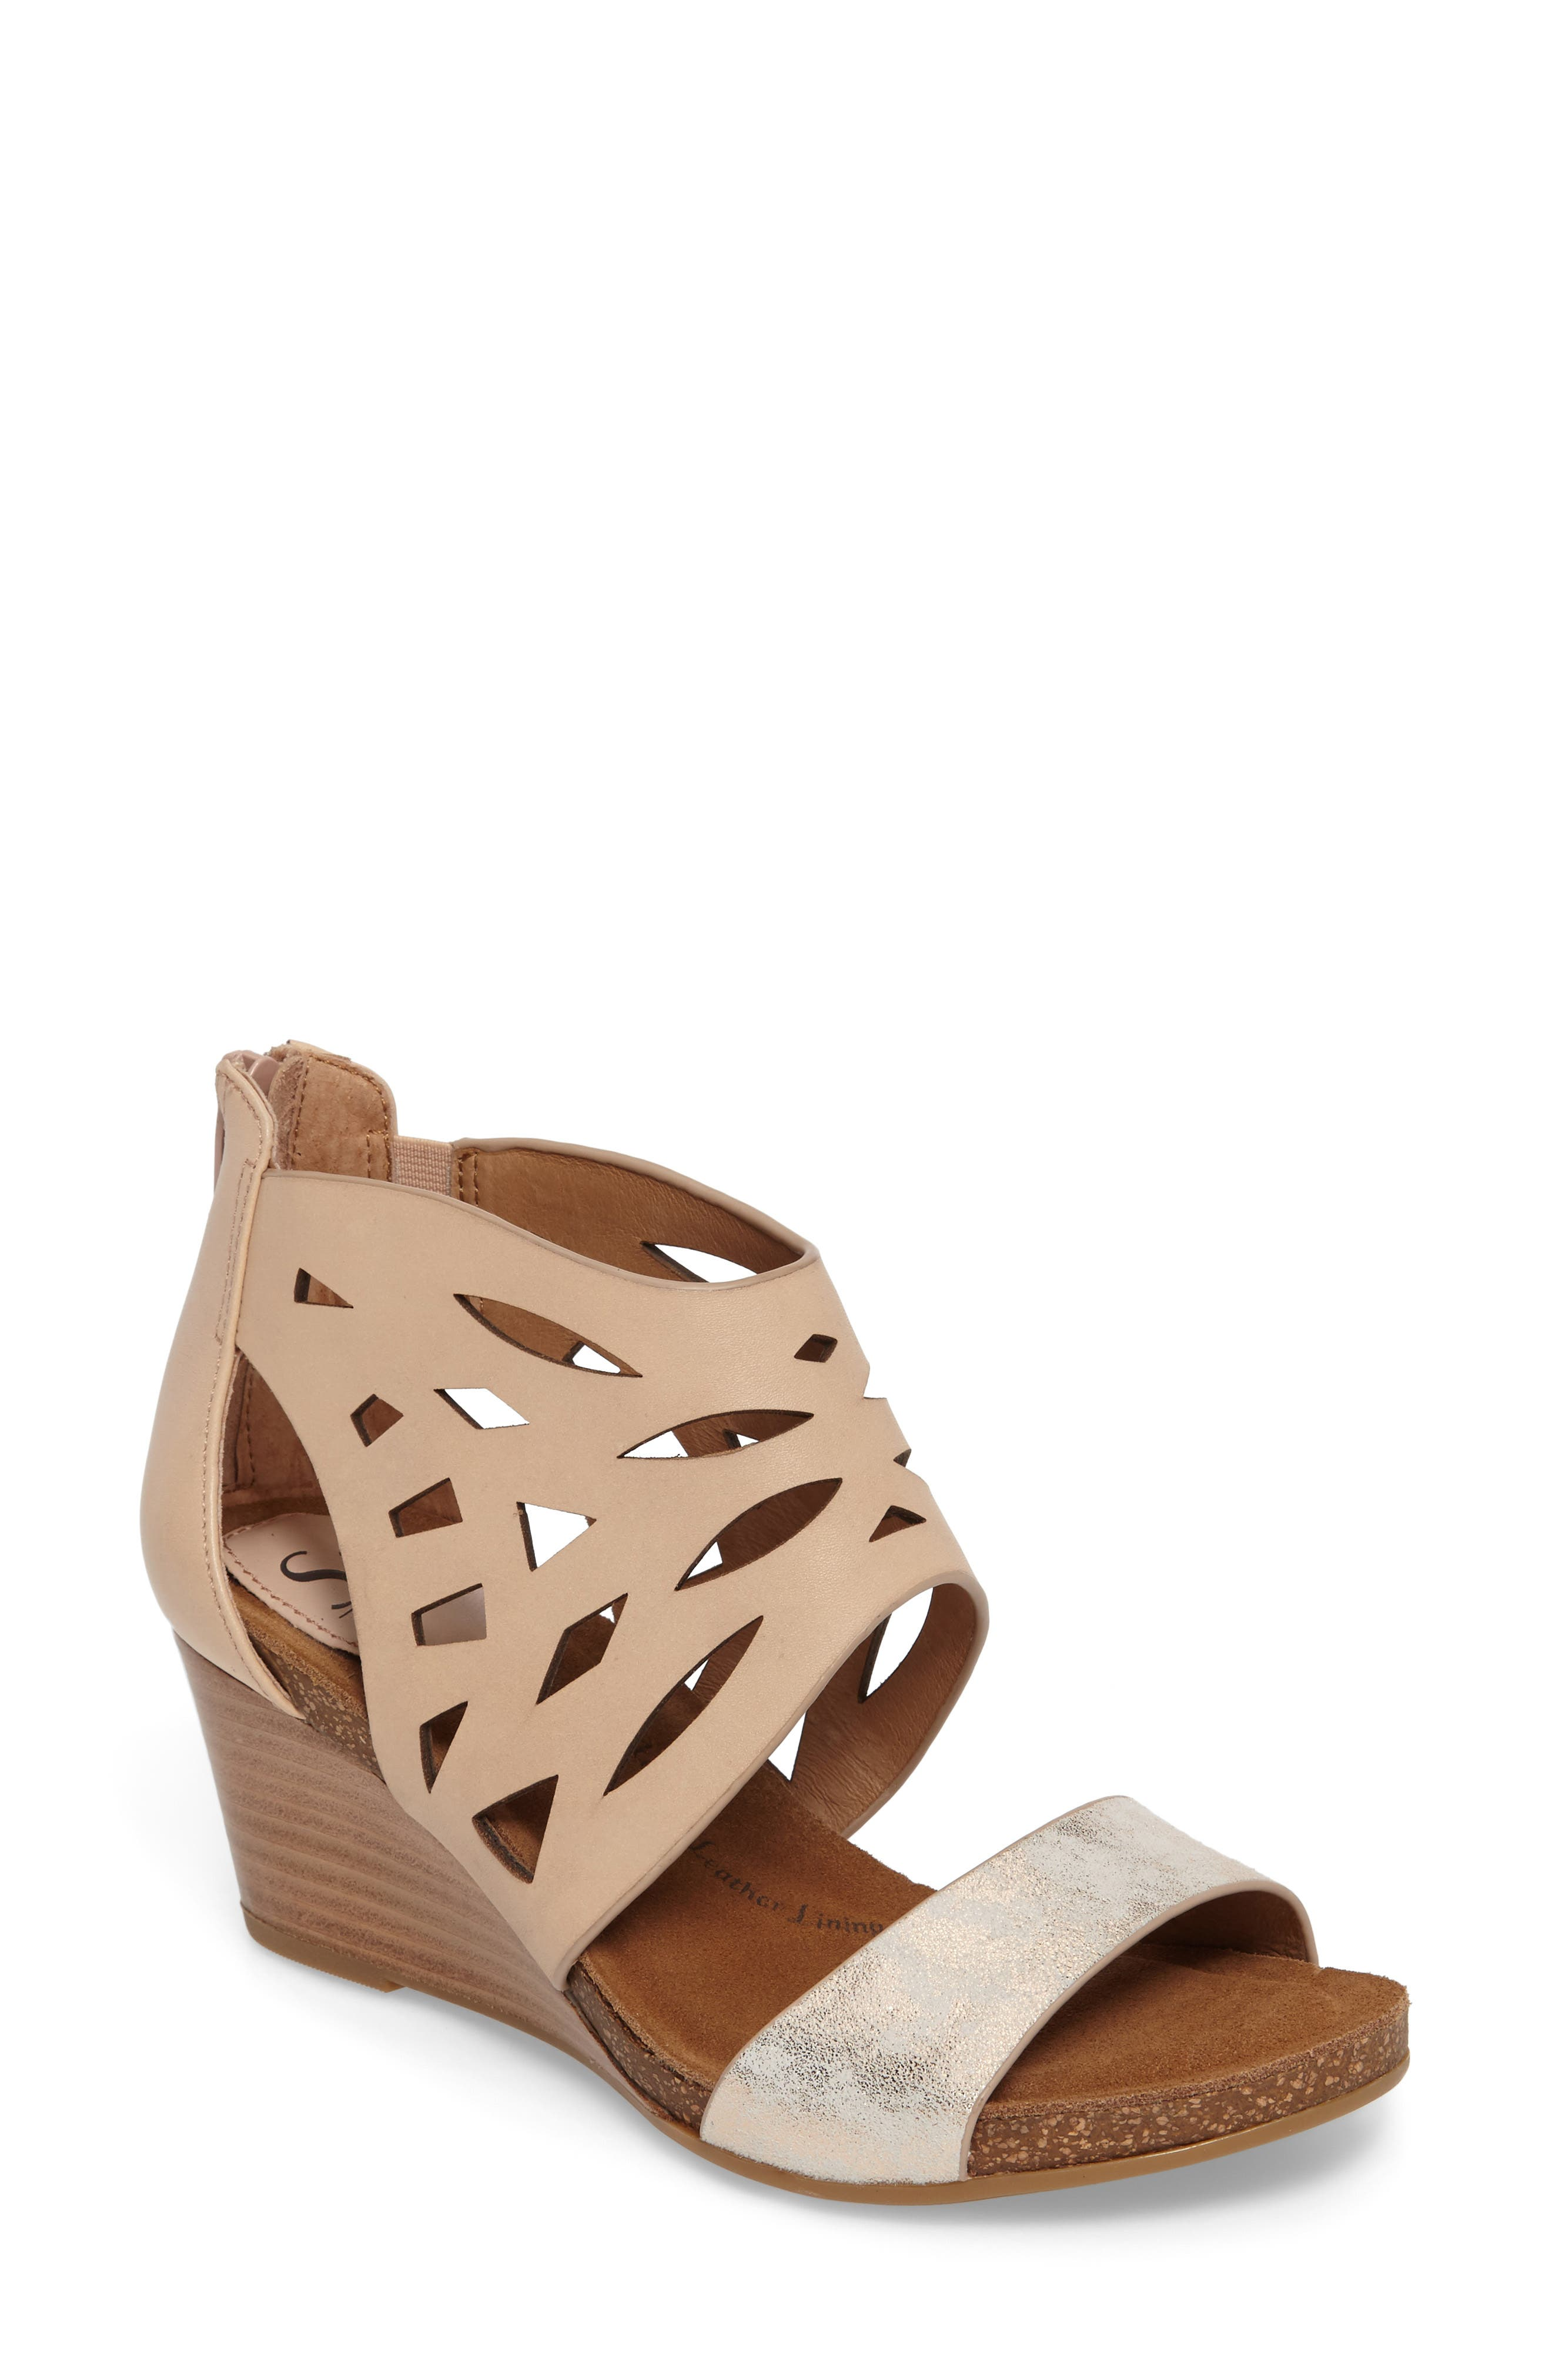 Mystic Perforated Wedge Sandal,                         Main,                         color, Blush/ Ivory Leather